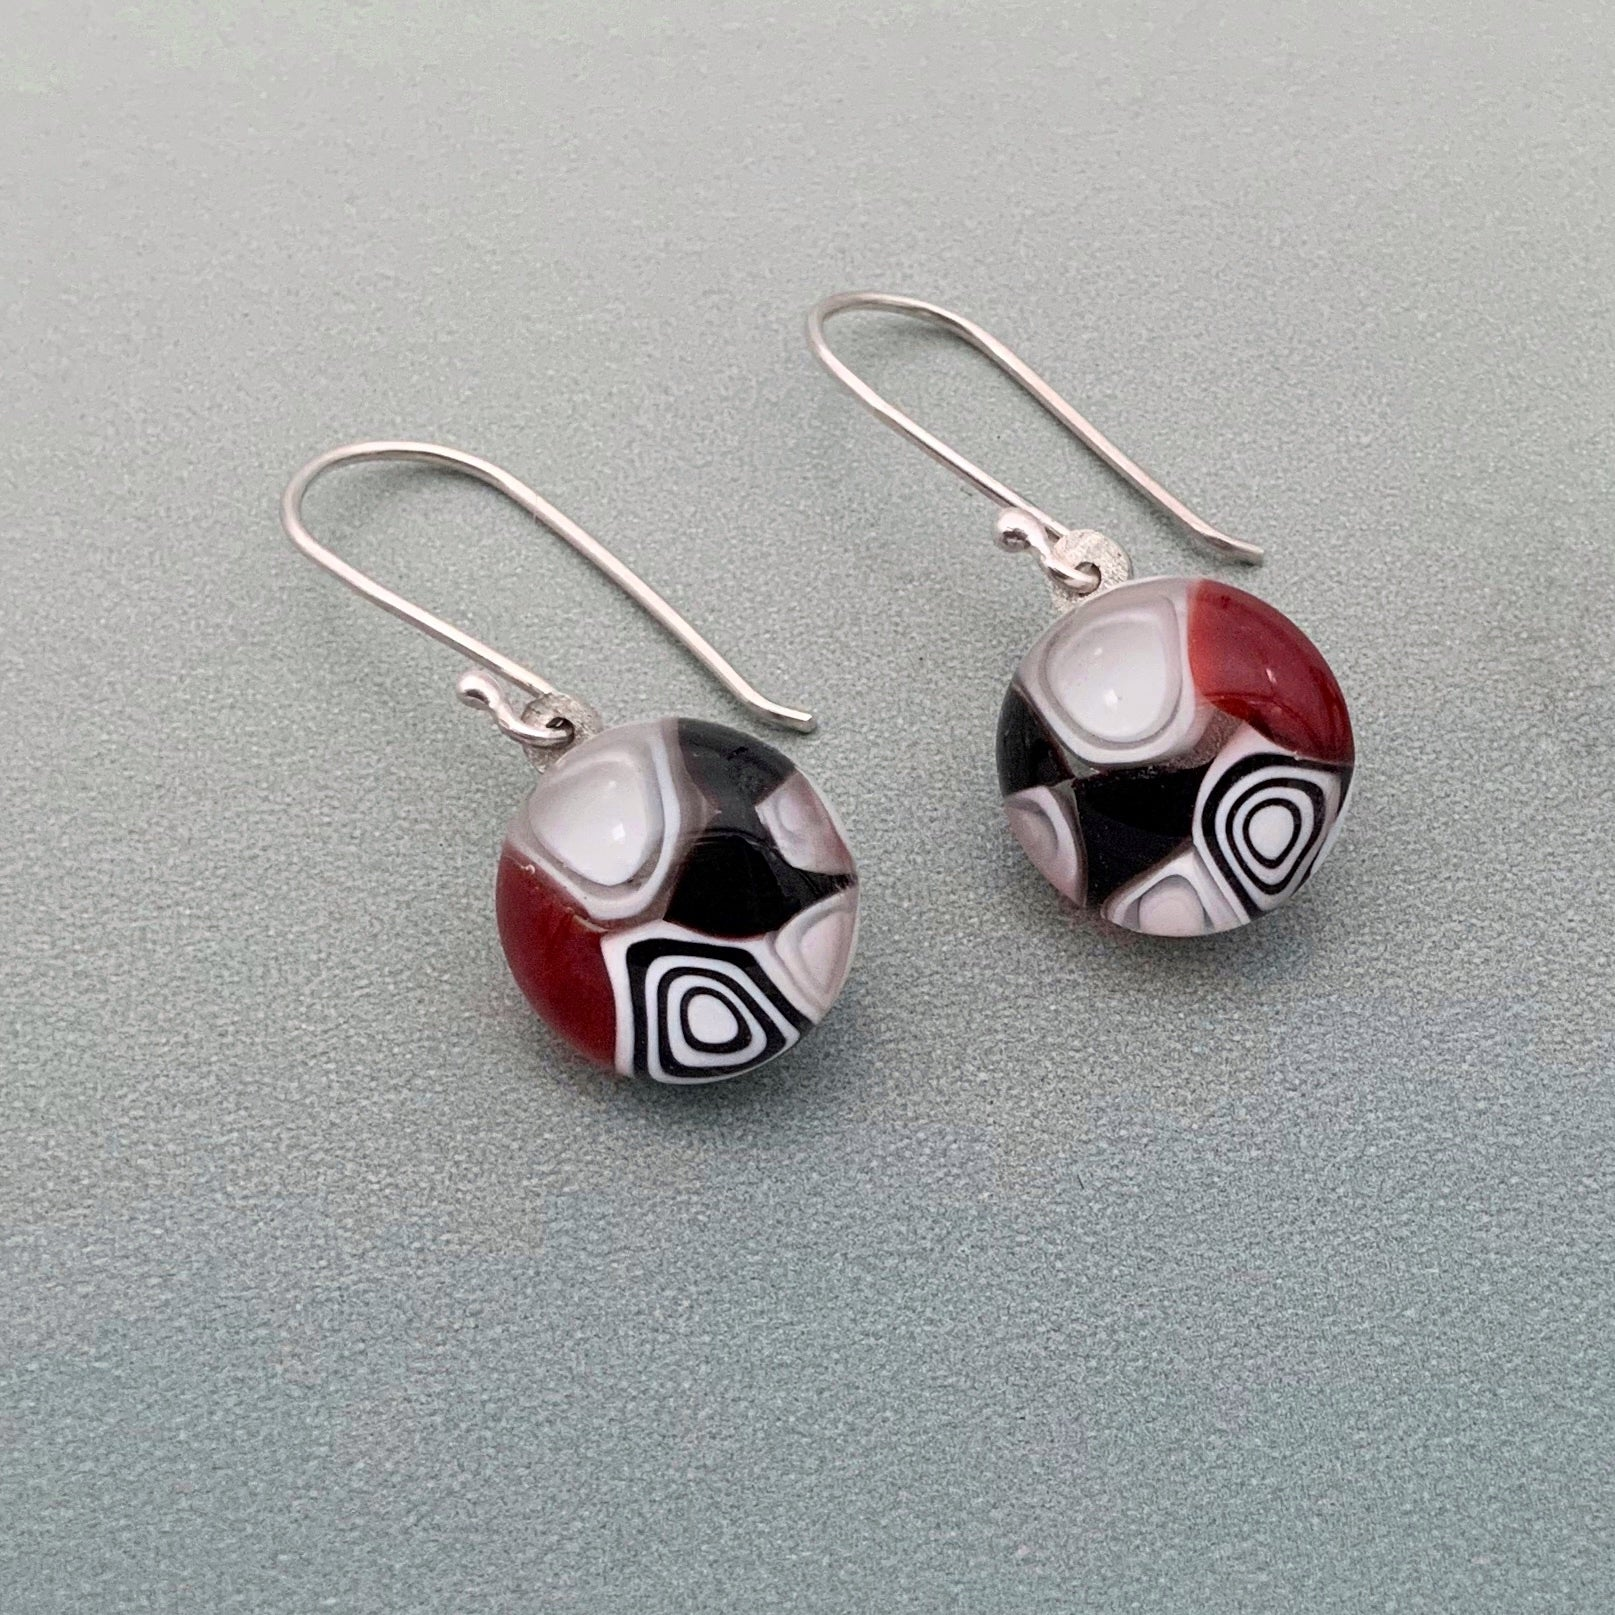 Designer Murrini red, black and white glass dangle earrings